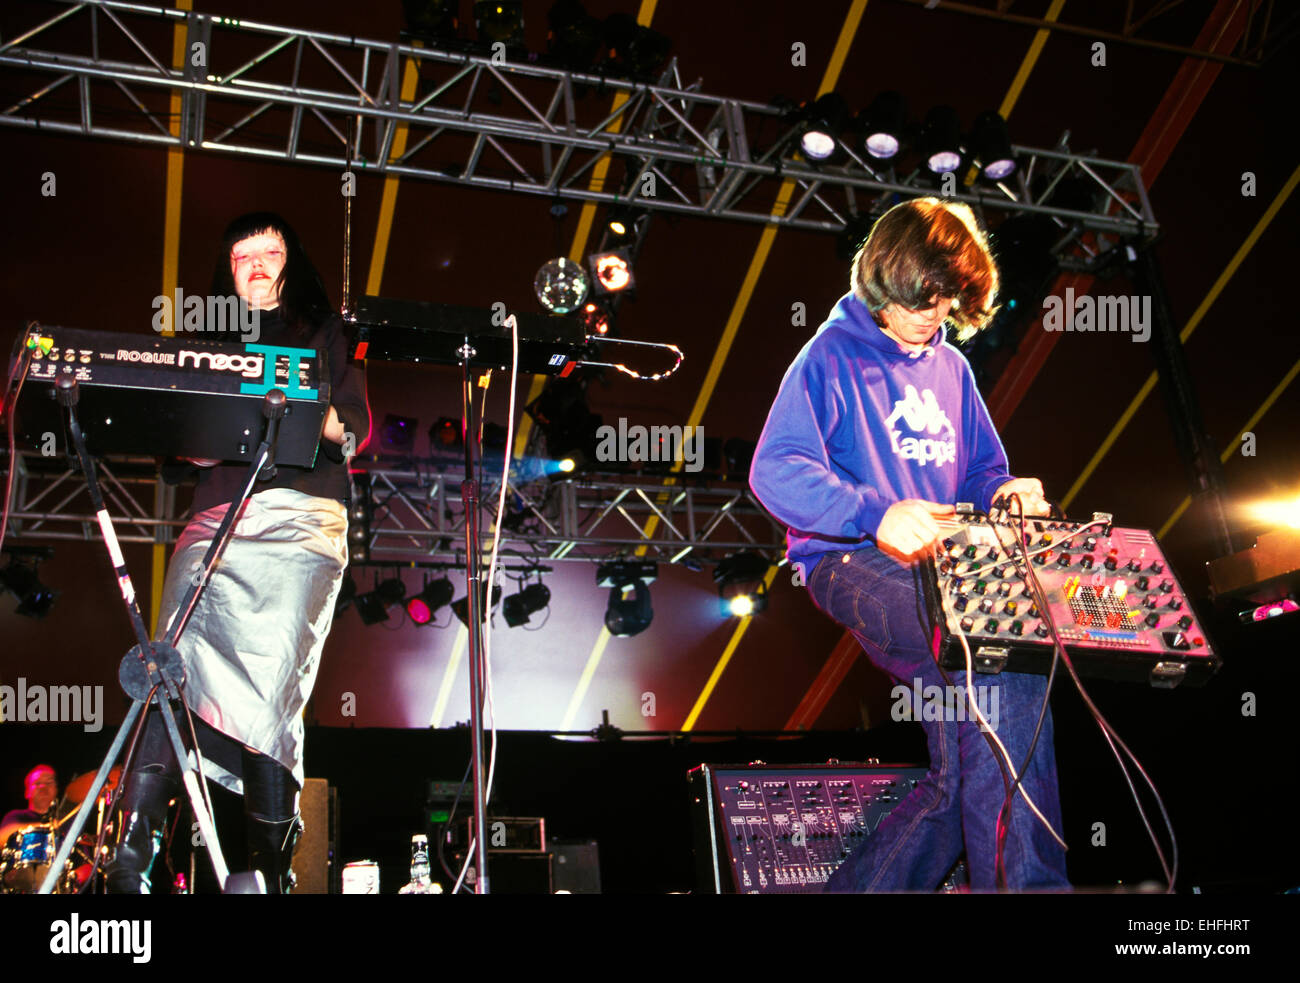 Add N to (X) live at Reading Festival. - Stock Image